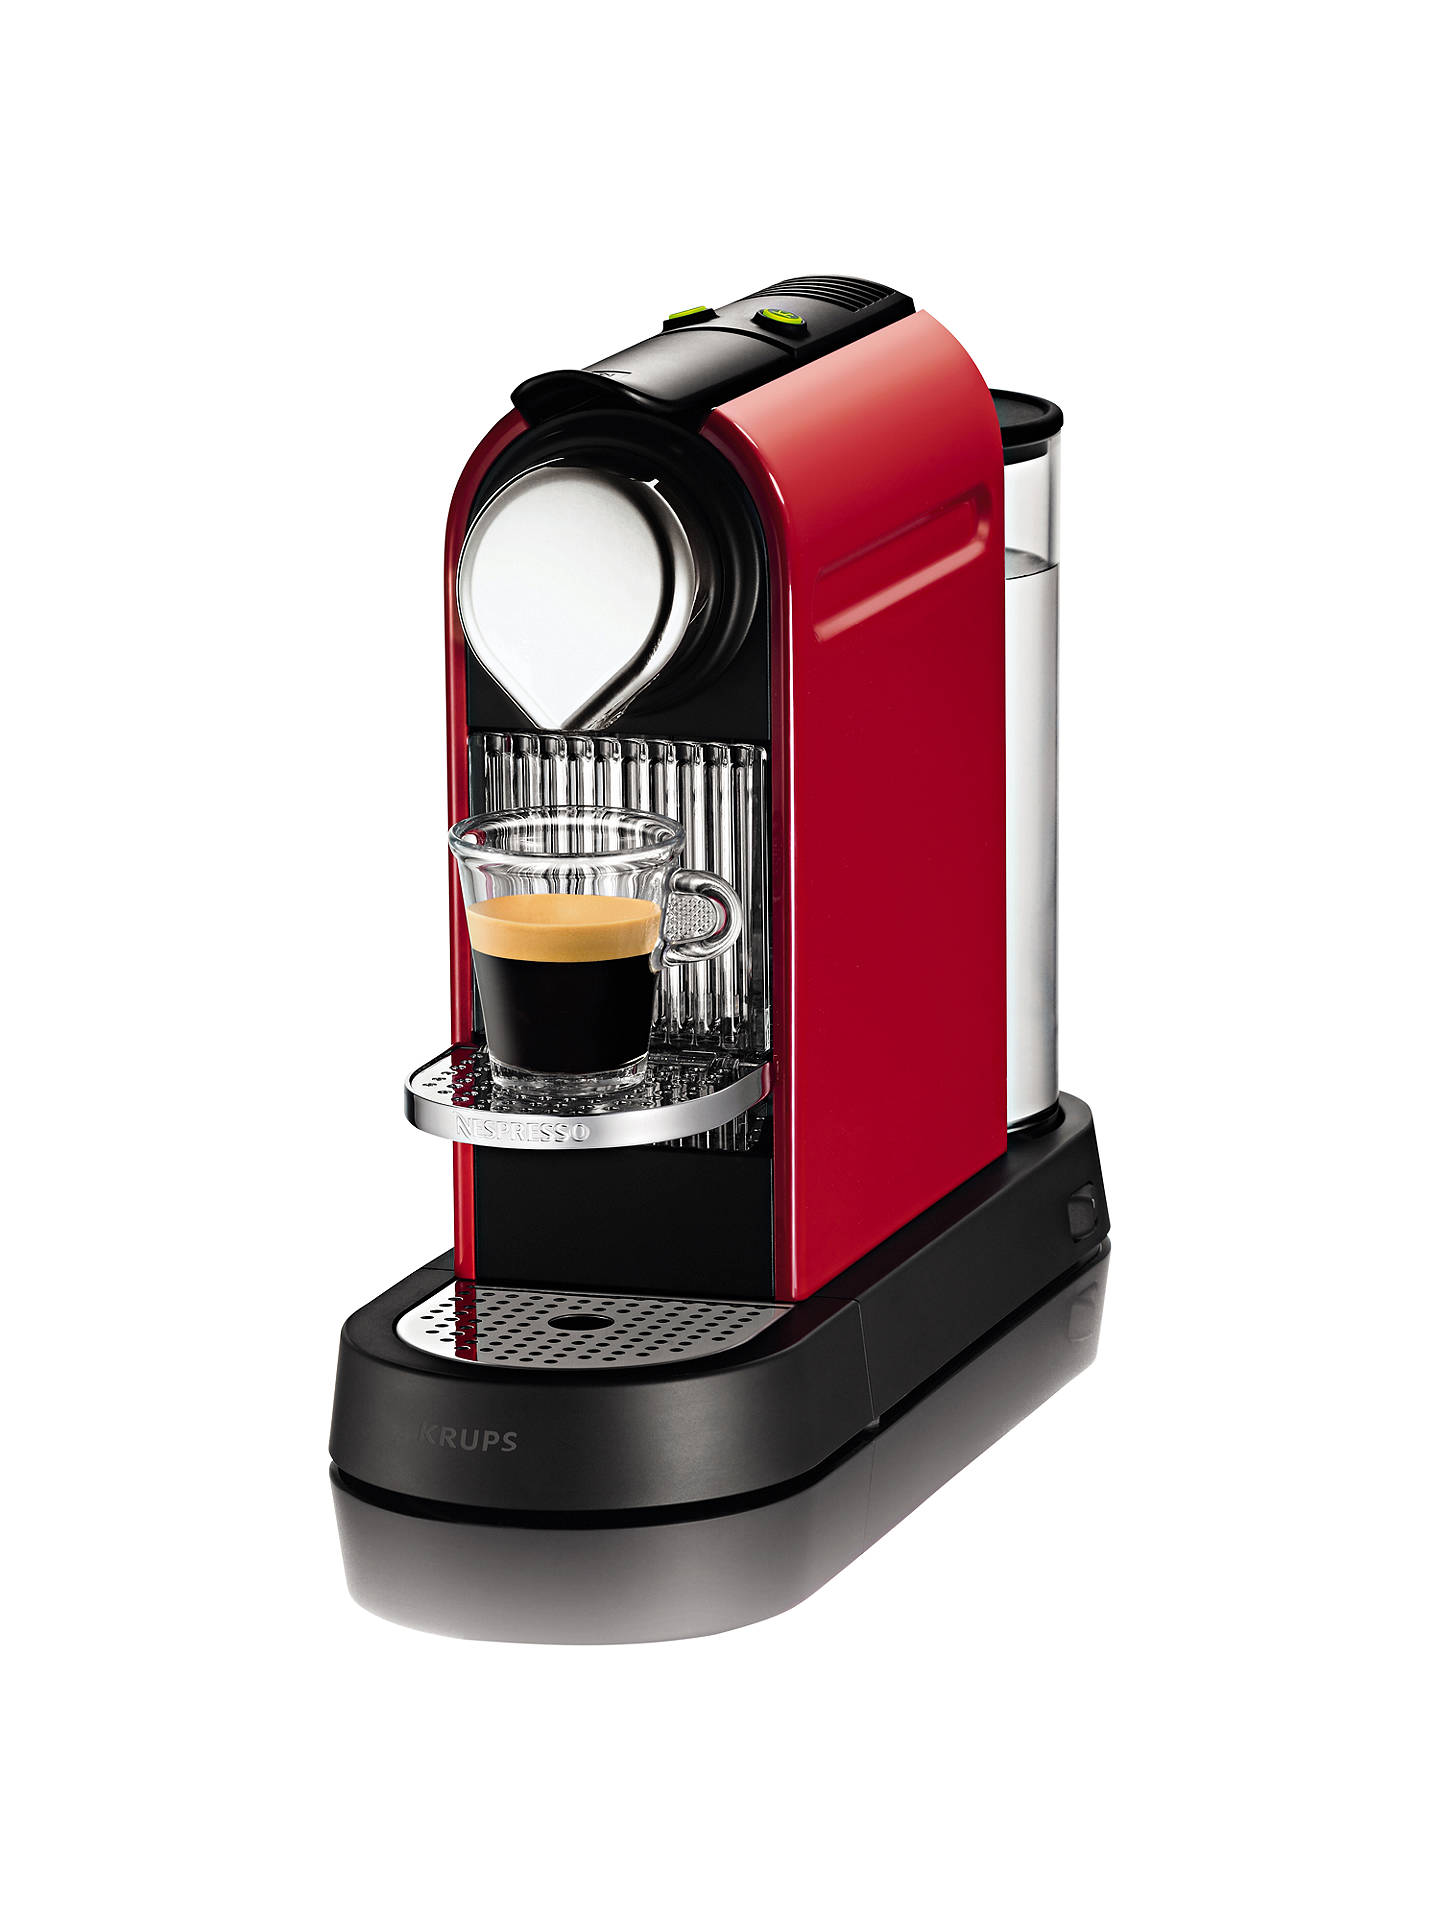 Buy Nespresso XN720540 Citiz Coffee Machine by KRUPS, Red Online at johnlewis.com